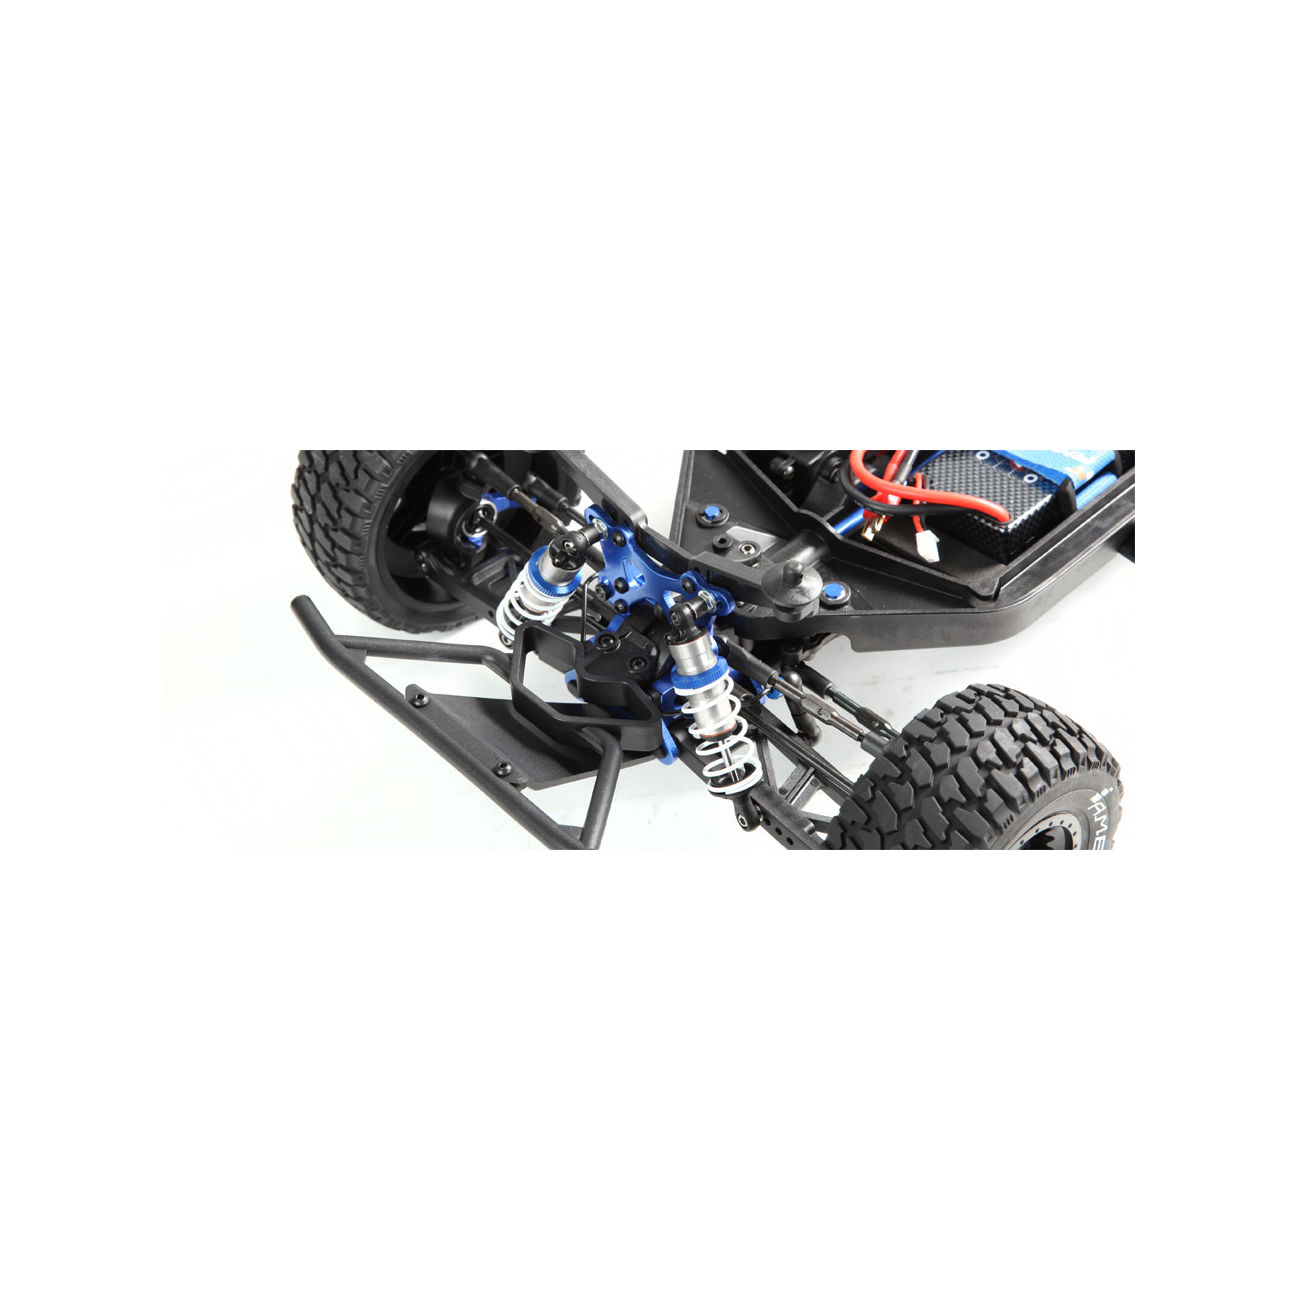 Amewi 1:10 AM10SC V2 Brushless 4WD Short Course Truck 2,4 GHz RTR Set 22139 4